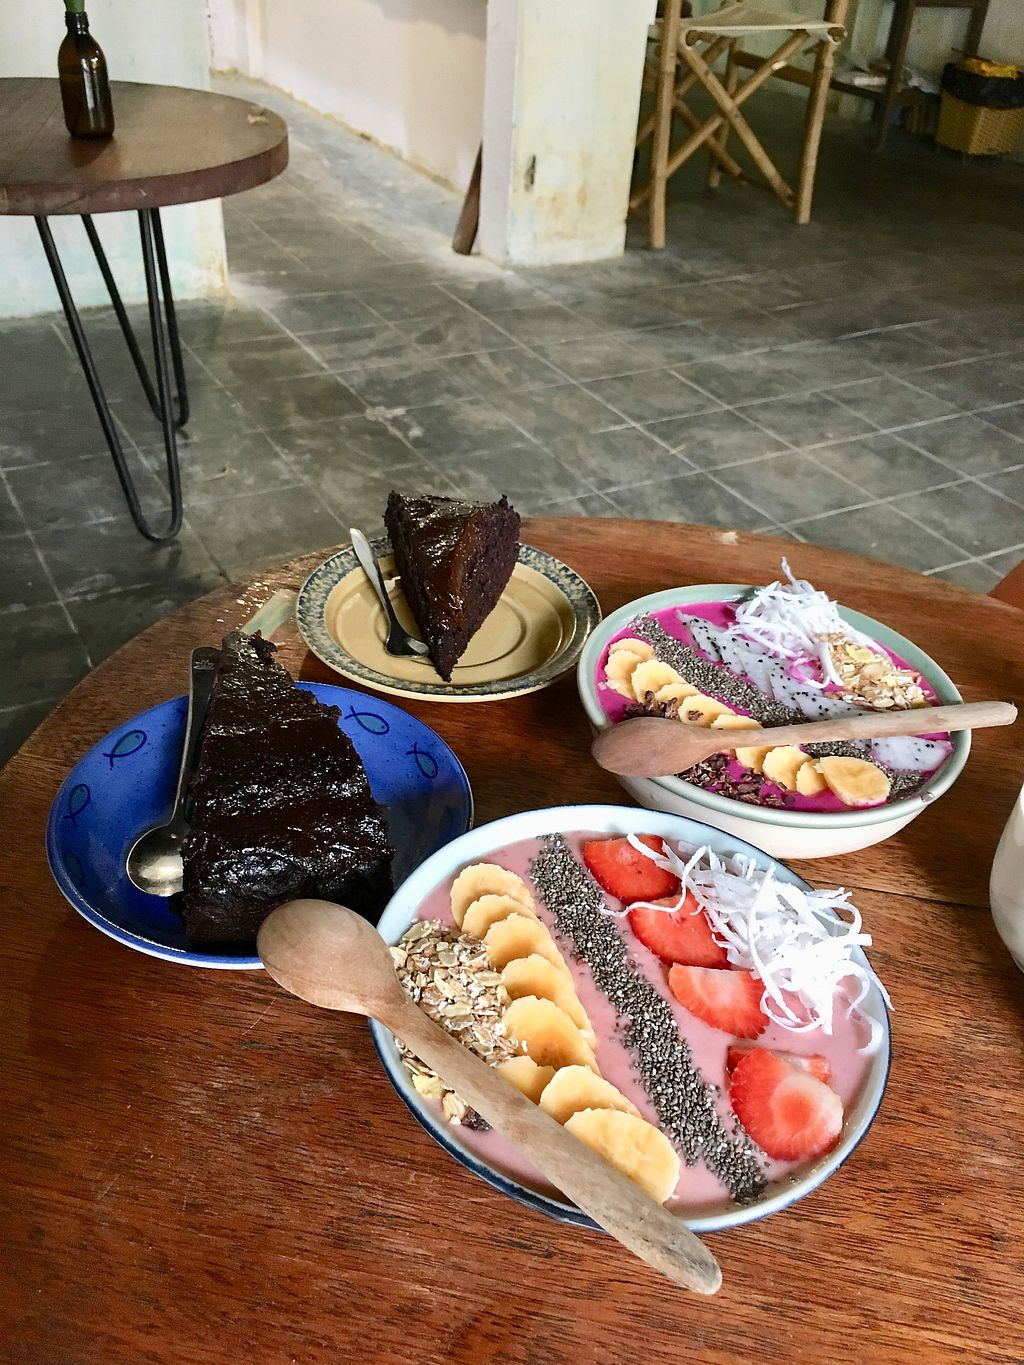 """Photo of Rosie's Cafe  by <a href=""""/members/profile/CamilaSilvaL"""">CamilaSilvaL</a> <br/>Chocolate cake and smoothie bowls  <br/> January 27, 2018  - <a href='/contact/abuse/image/77938/351442'>Report</a>"""